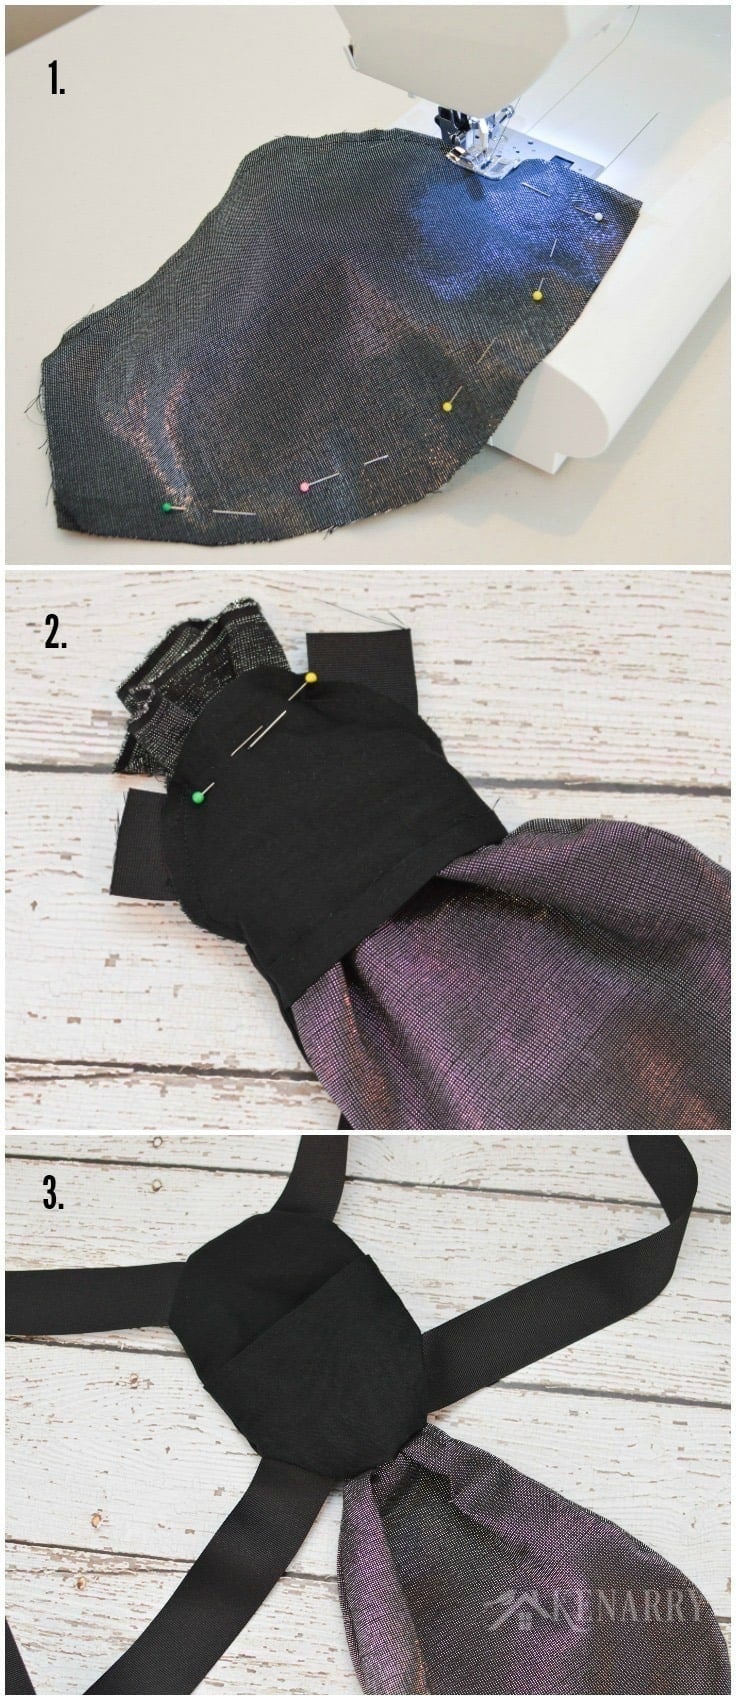 Sew an iridescent pouch to a black back pack to make DIY wings for a child's firefly costume for Halloween.